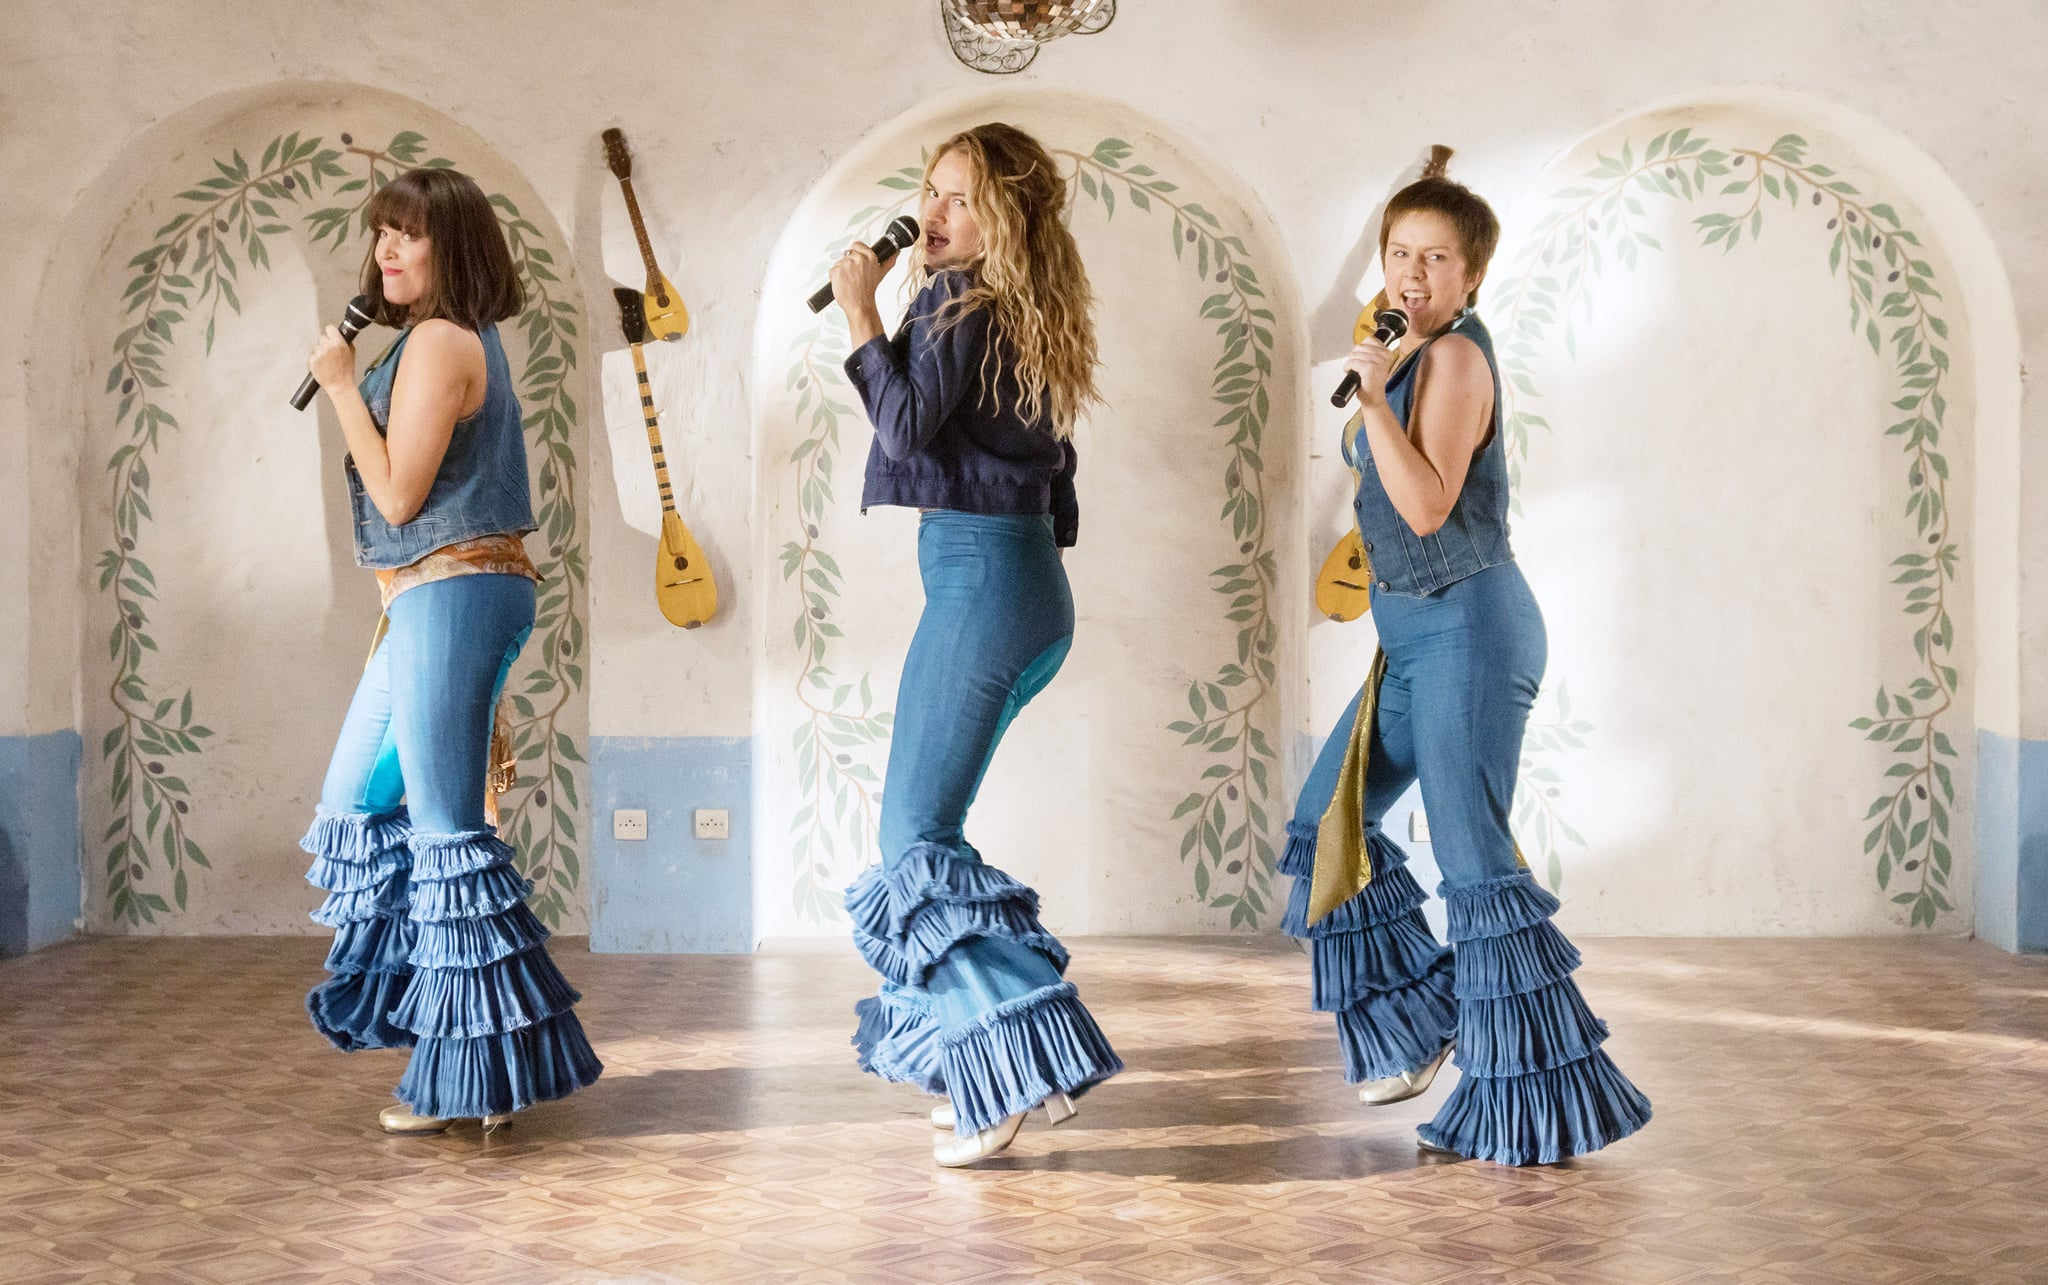 MAMMA MIA! HERE WE GO AGAIN, from left: Jessica Keenan Wynn, Lily James, Alexa Davies, 2018. ph: Jonathan Prime/  Universal Studios /Courtesy Everett Collection